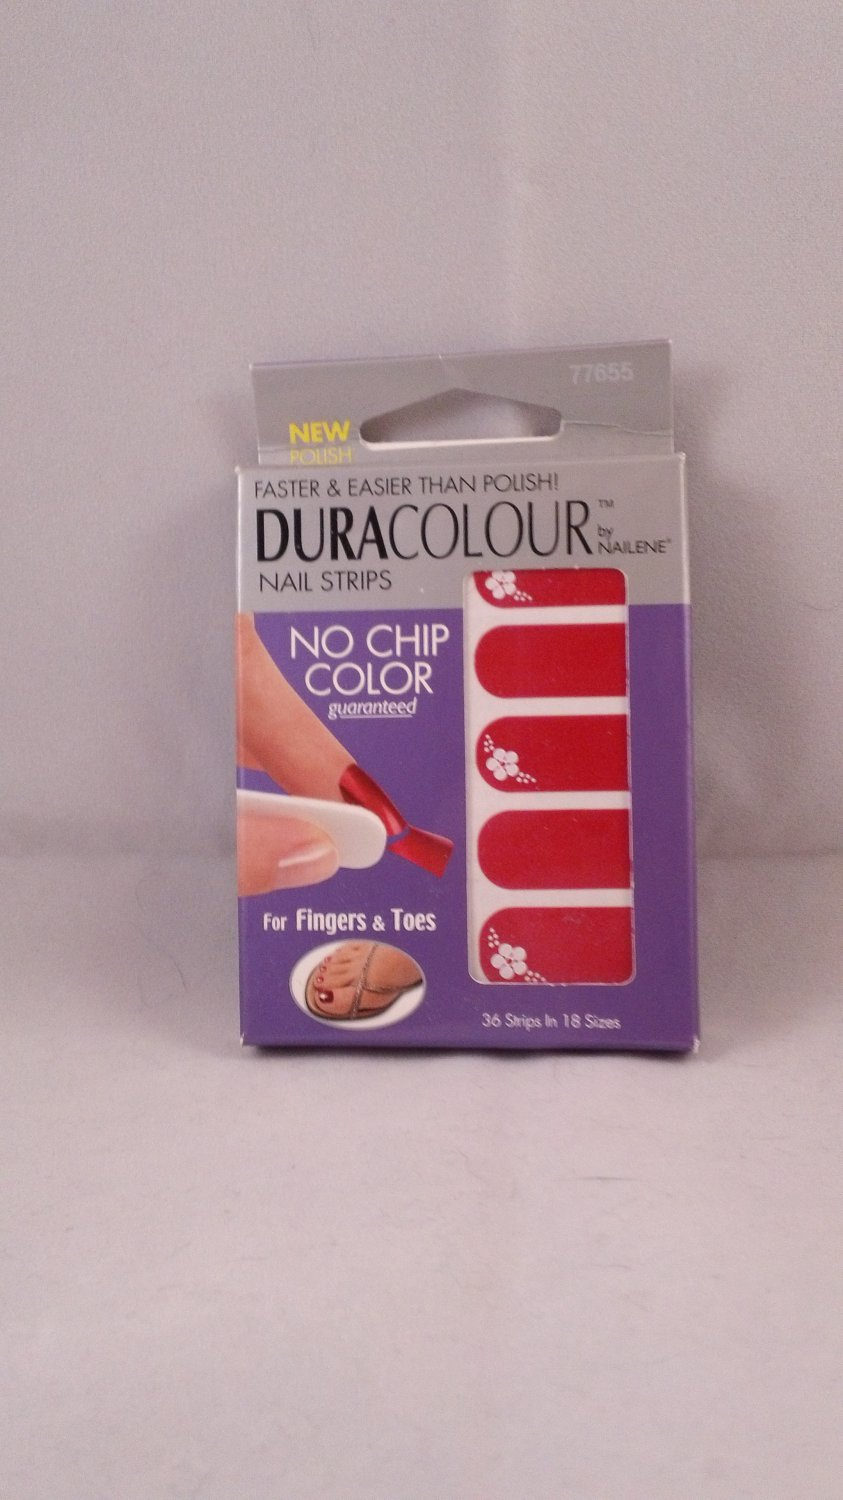 Nailene DuraColour Nail Polish Strips Red Wraps Shields Art Stickers Decals Designs